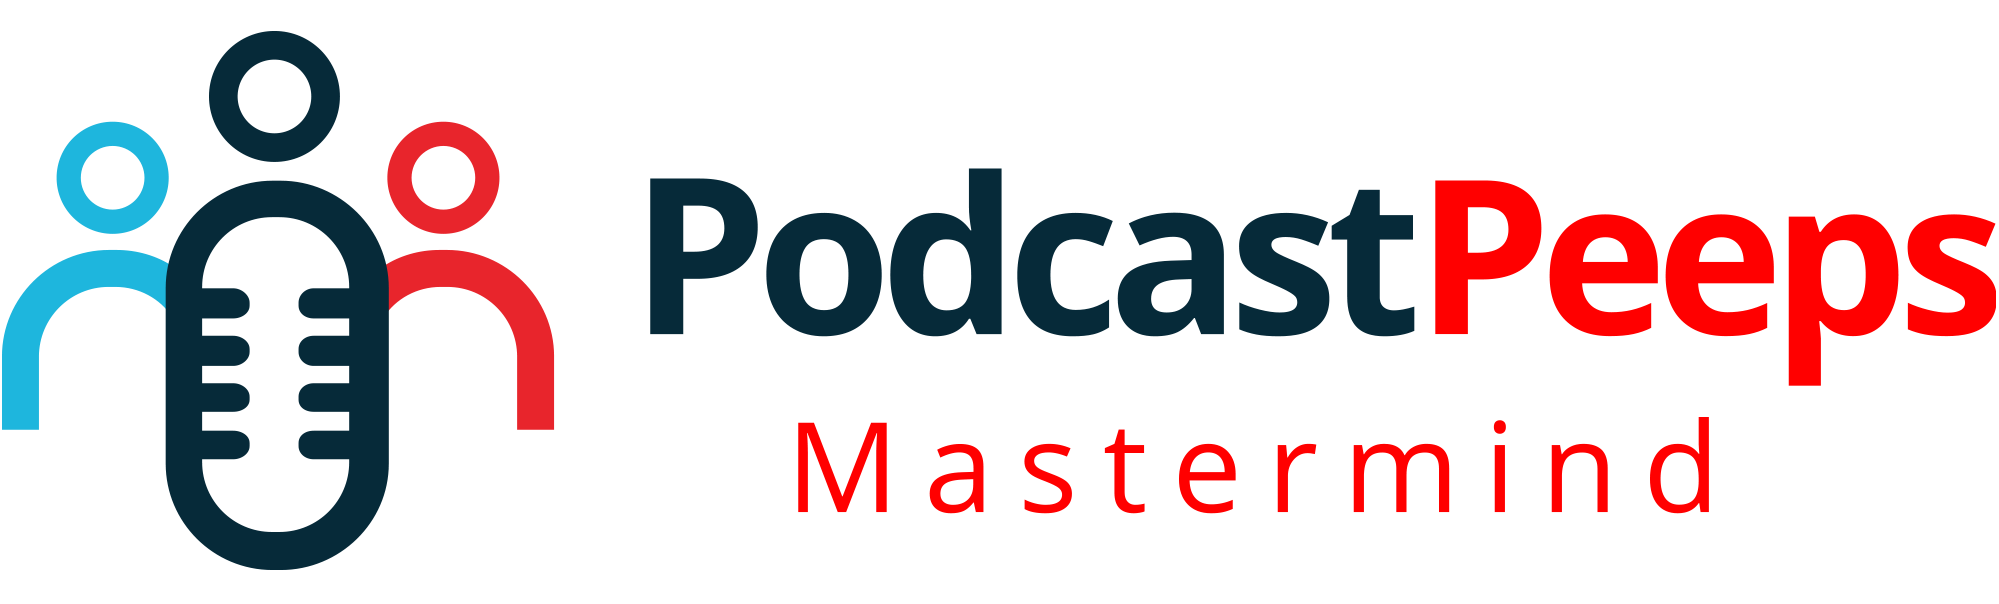 Adding Value To Your Podcast Through SEO with Stephan Spencer